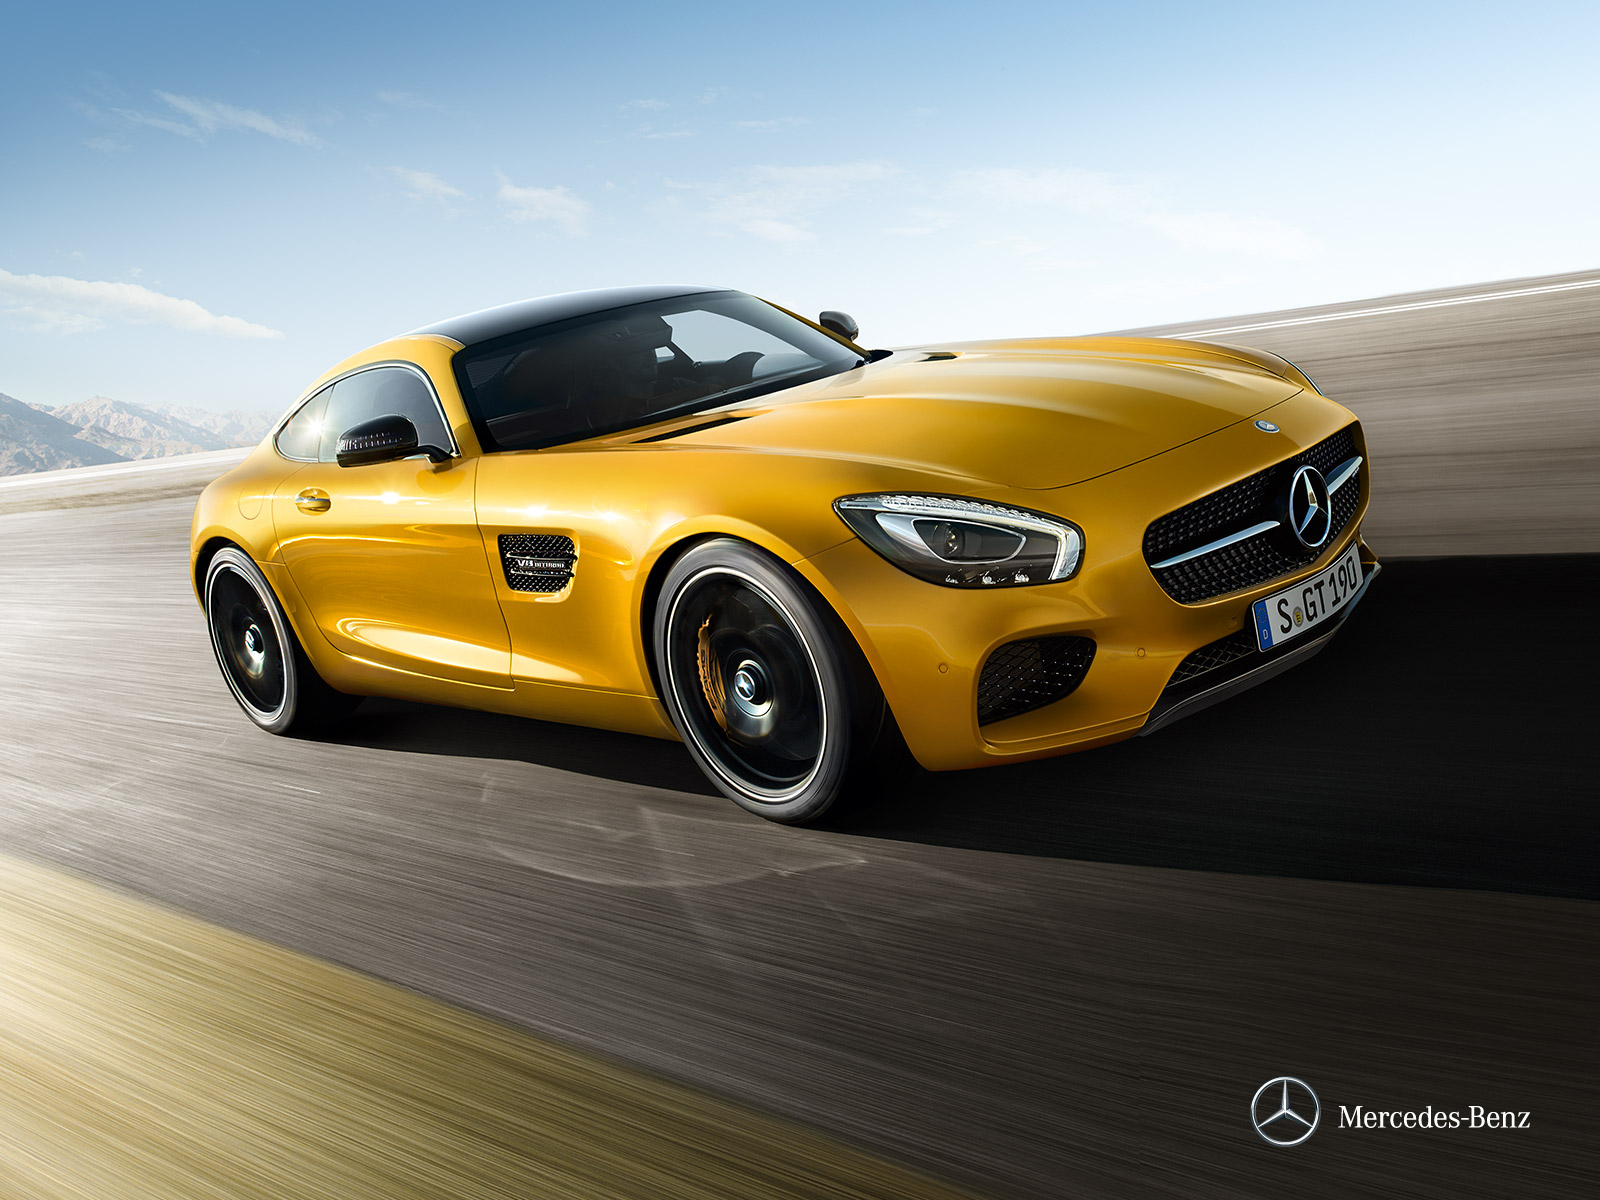 mercedes-benz-amg-gt-c190 wallpaper 03 1600x1200 09-2014